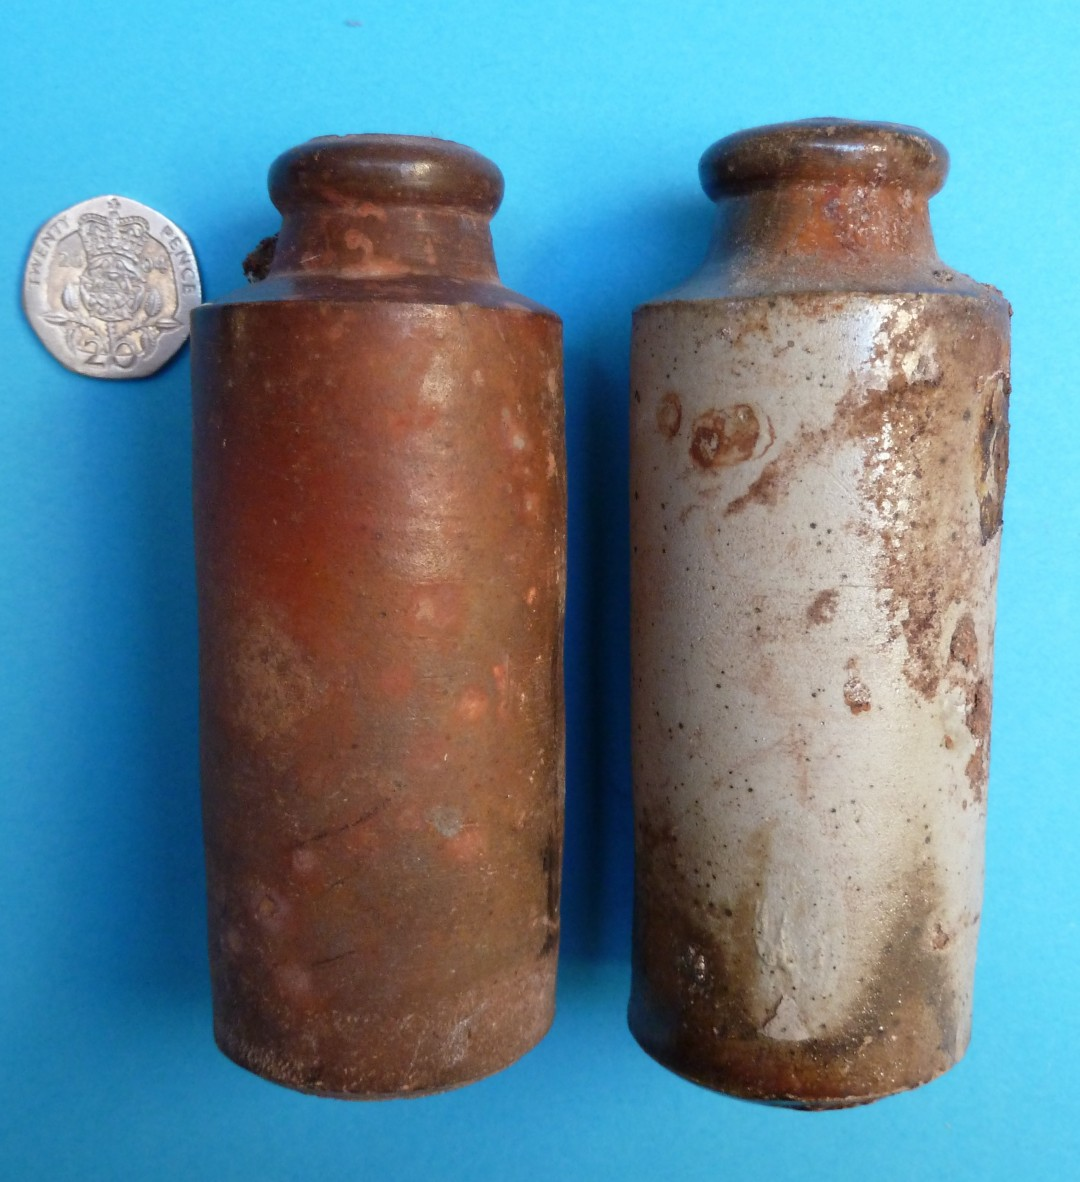 Ink Bottles from a Destructor